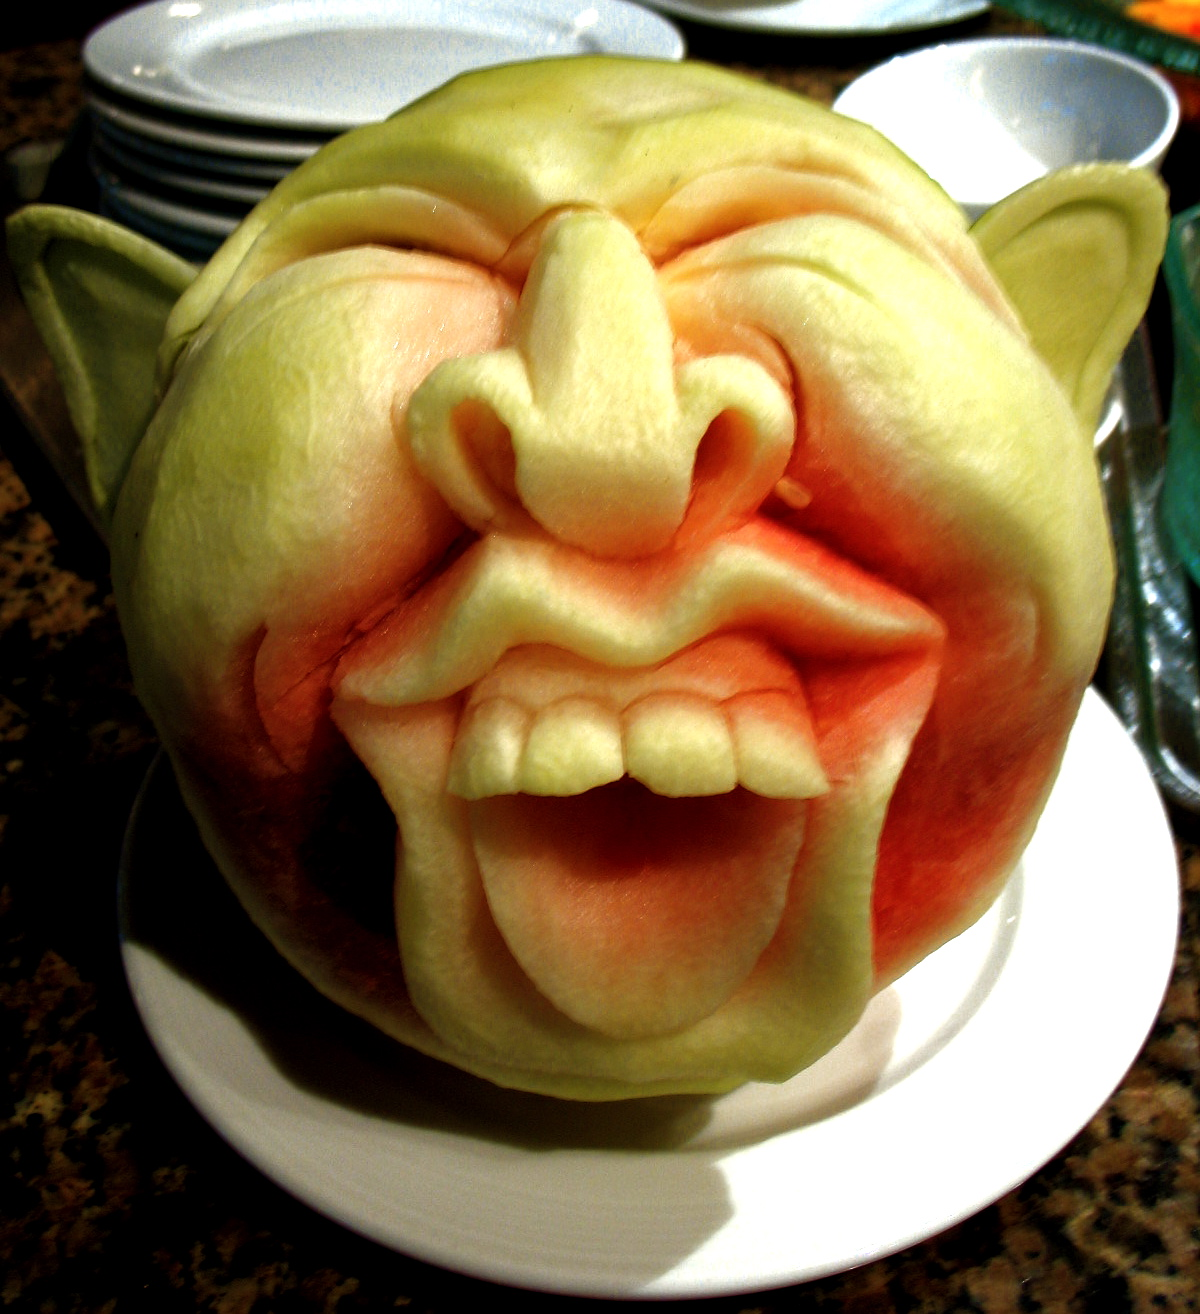 Watermelon-Carving-3(16)